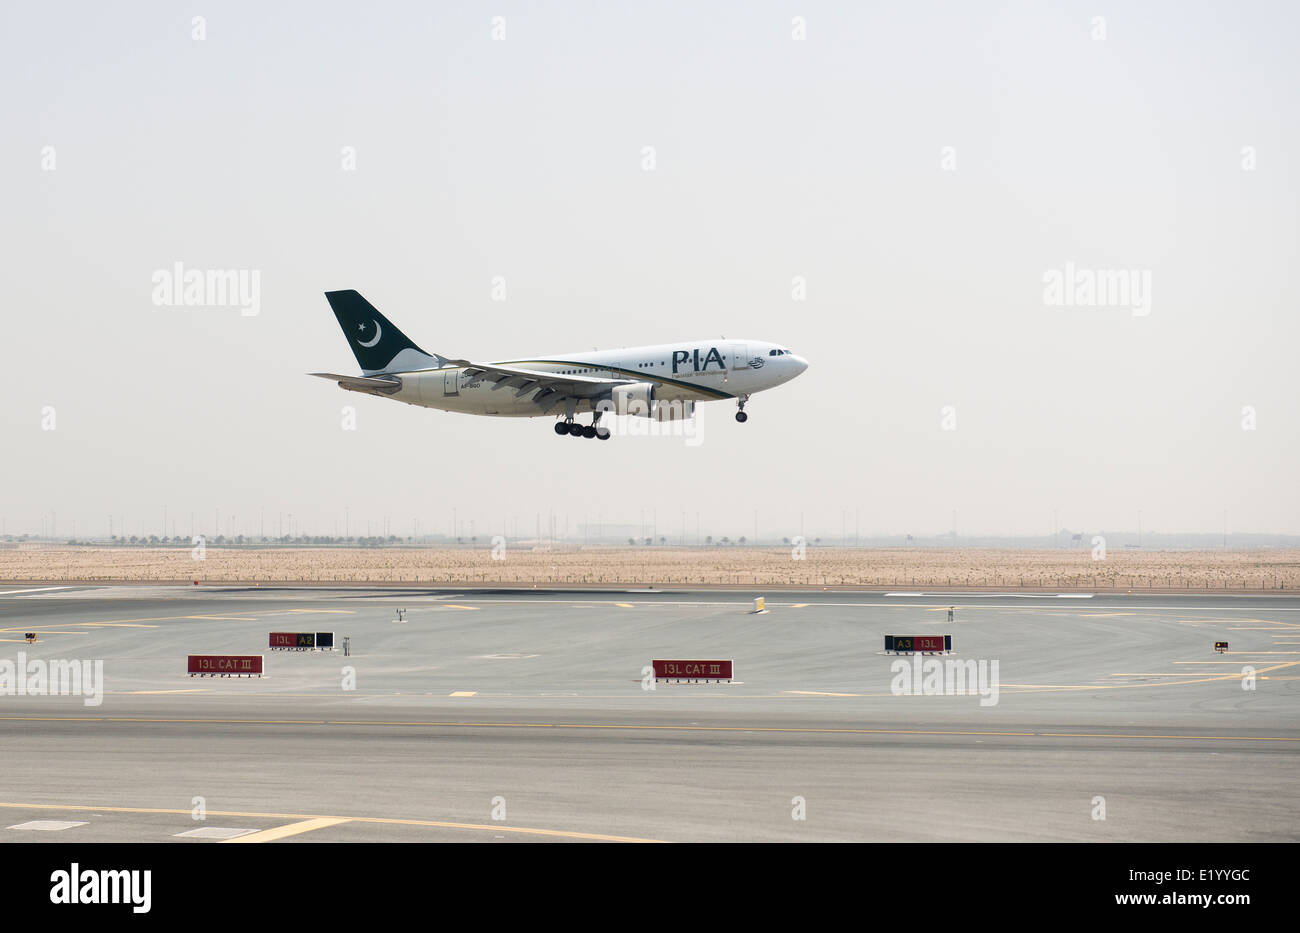 PIA - Pakistan international airplane landing. - Stock Image